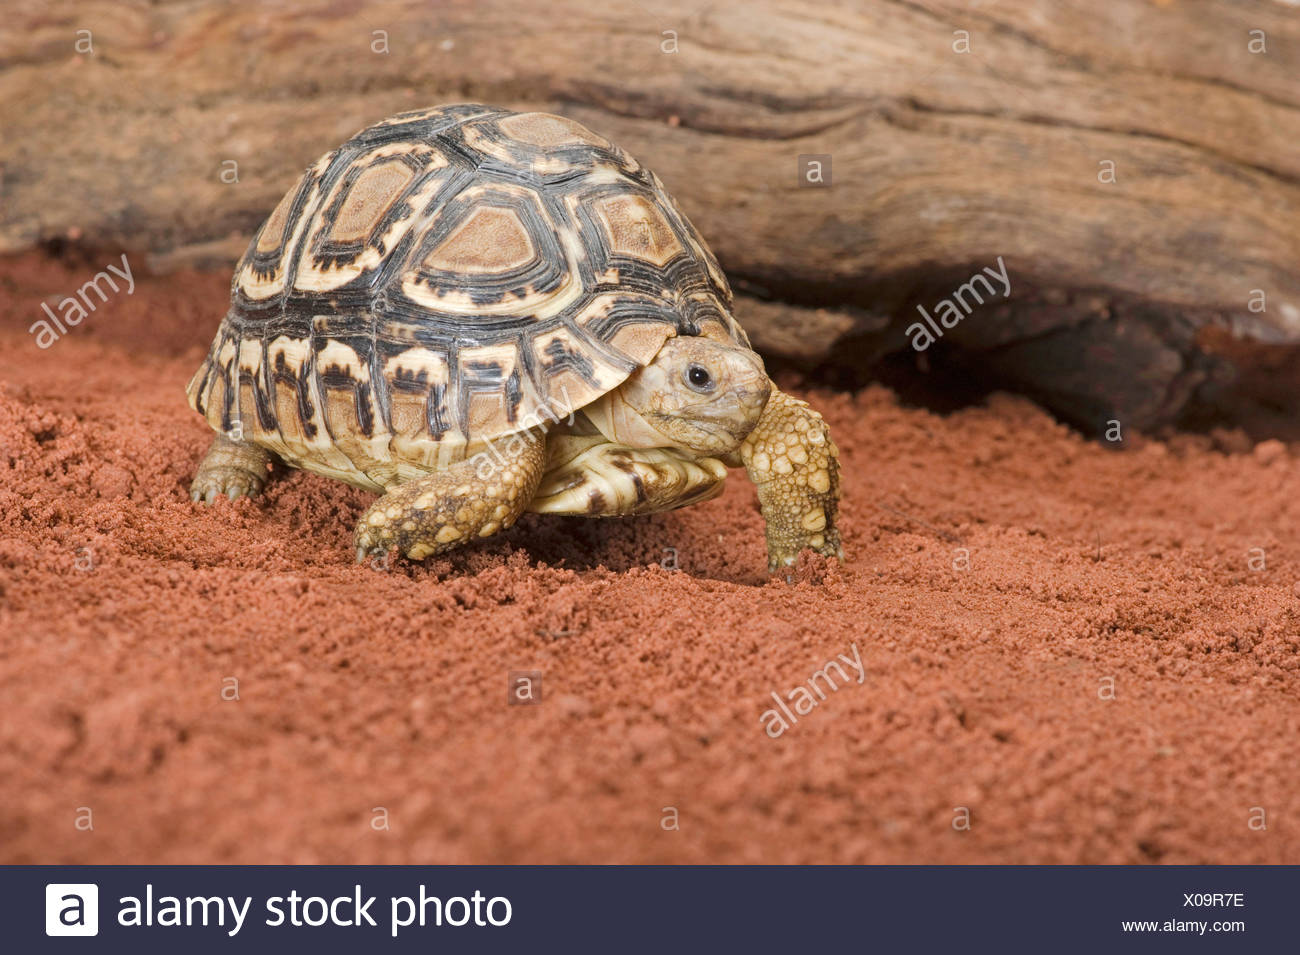 Leopard tortoise (Stigmochelys pardalis, Geochelone pardalis), walking on sandy ground - Stock Image